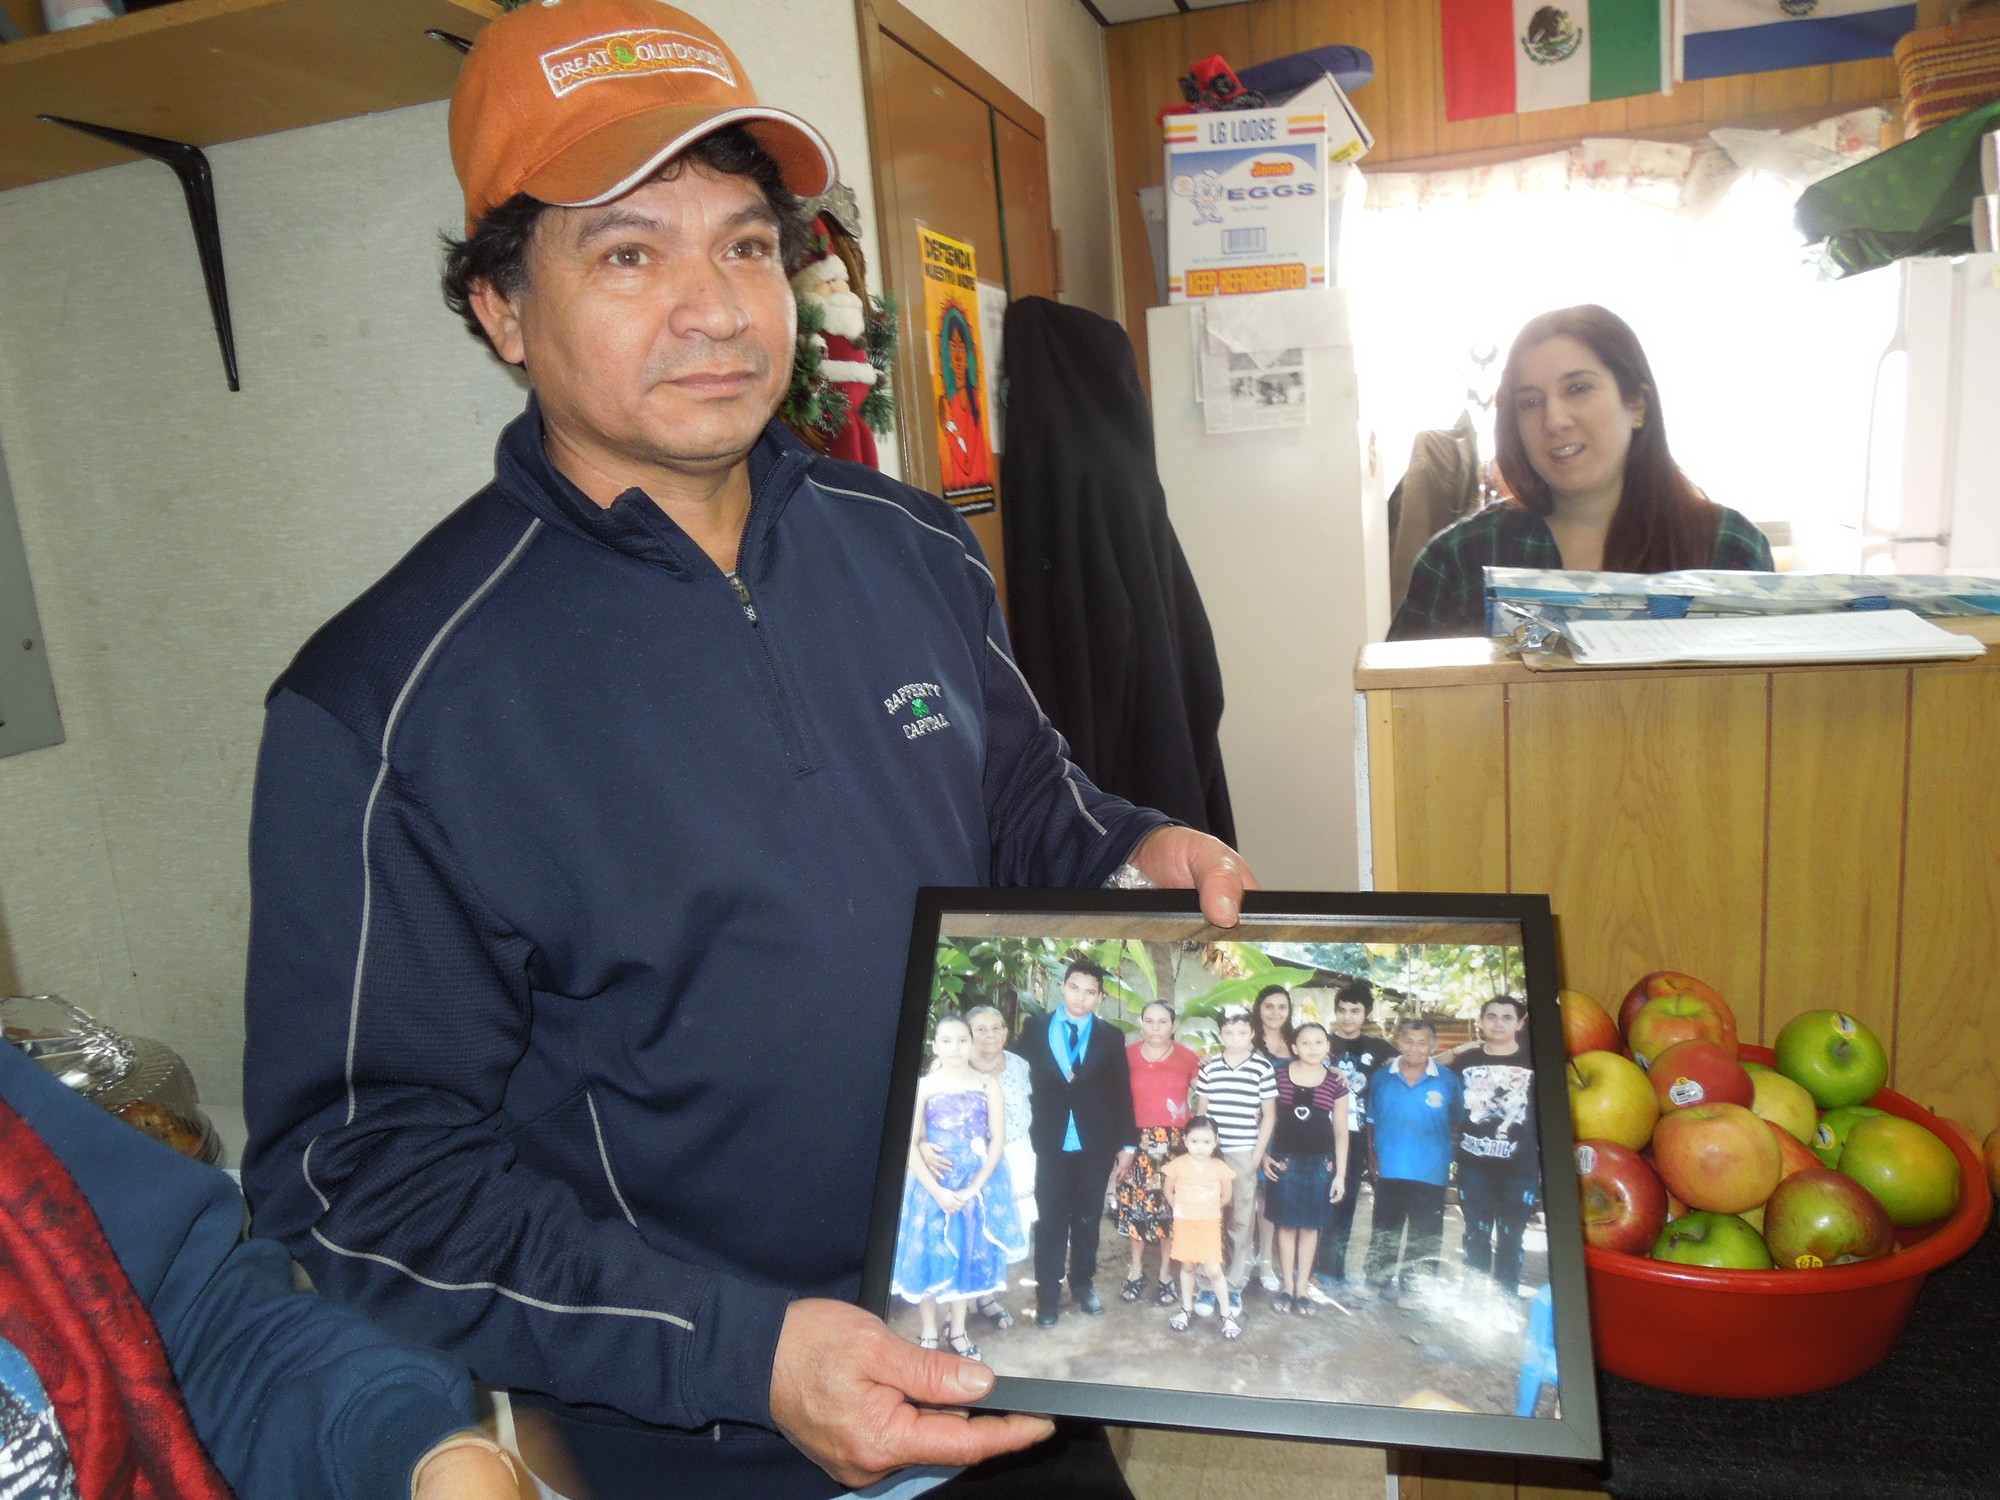 Nicholas Diaz held a photograph of his family back in El Salvador. He sends money back home to support them.